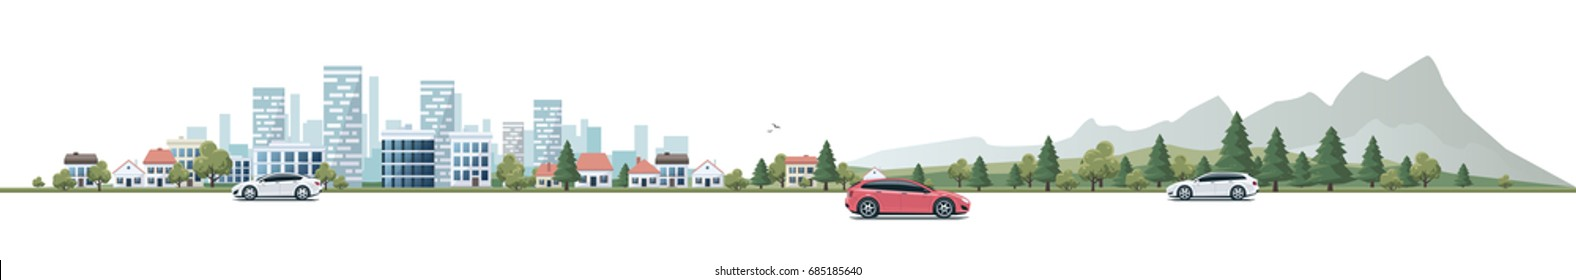 Flat vector cartoon style illustration of urban landscape street with cars, skyline city office buildings, family houses in small town and mountain with trees in background. Wide horizontal panorama.